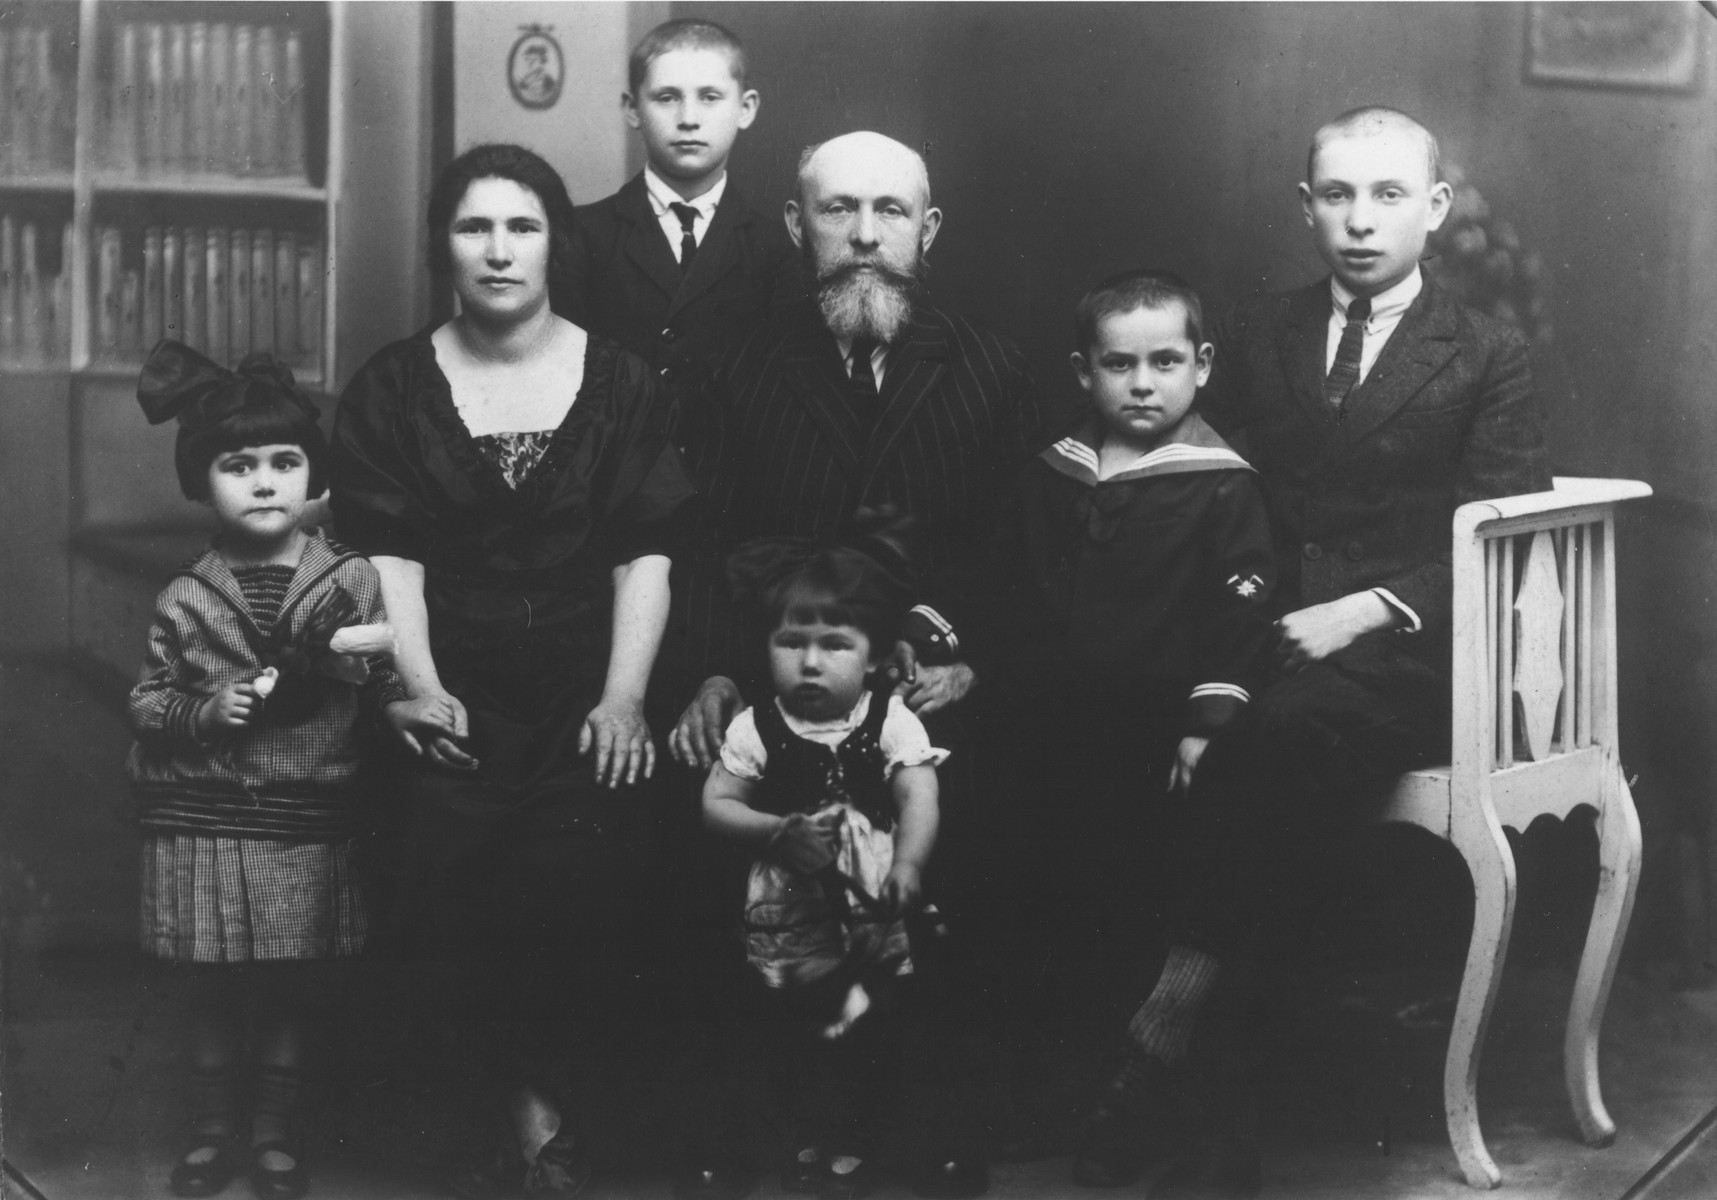 Studio portrait of a Jewish family in interior Poland.  Pictured are Yechial Yosef Szwimer, his wife Raiza  Bella Godfried Szwimer and their children: sons Zvi, Yehuda, Yitzhak or Zerach, and daughters Tova and Rachel. Yechiel was born in Bedzin, Poland to Moshe Yechiel and [mother's name unknown]. Yechiel served  in the RAF in Ramat David in Israel, and died in 1967.   Pictured in the center are Aaronl Szwimer with some of their eleven children.